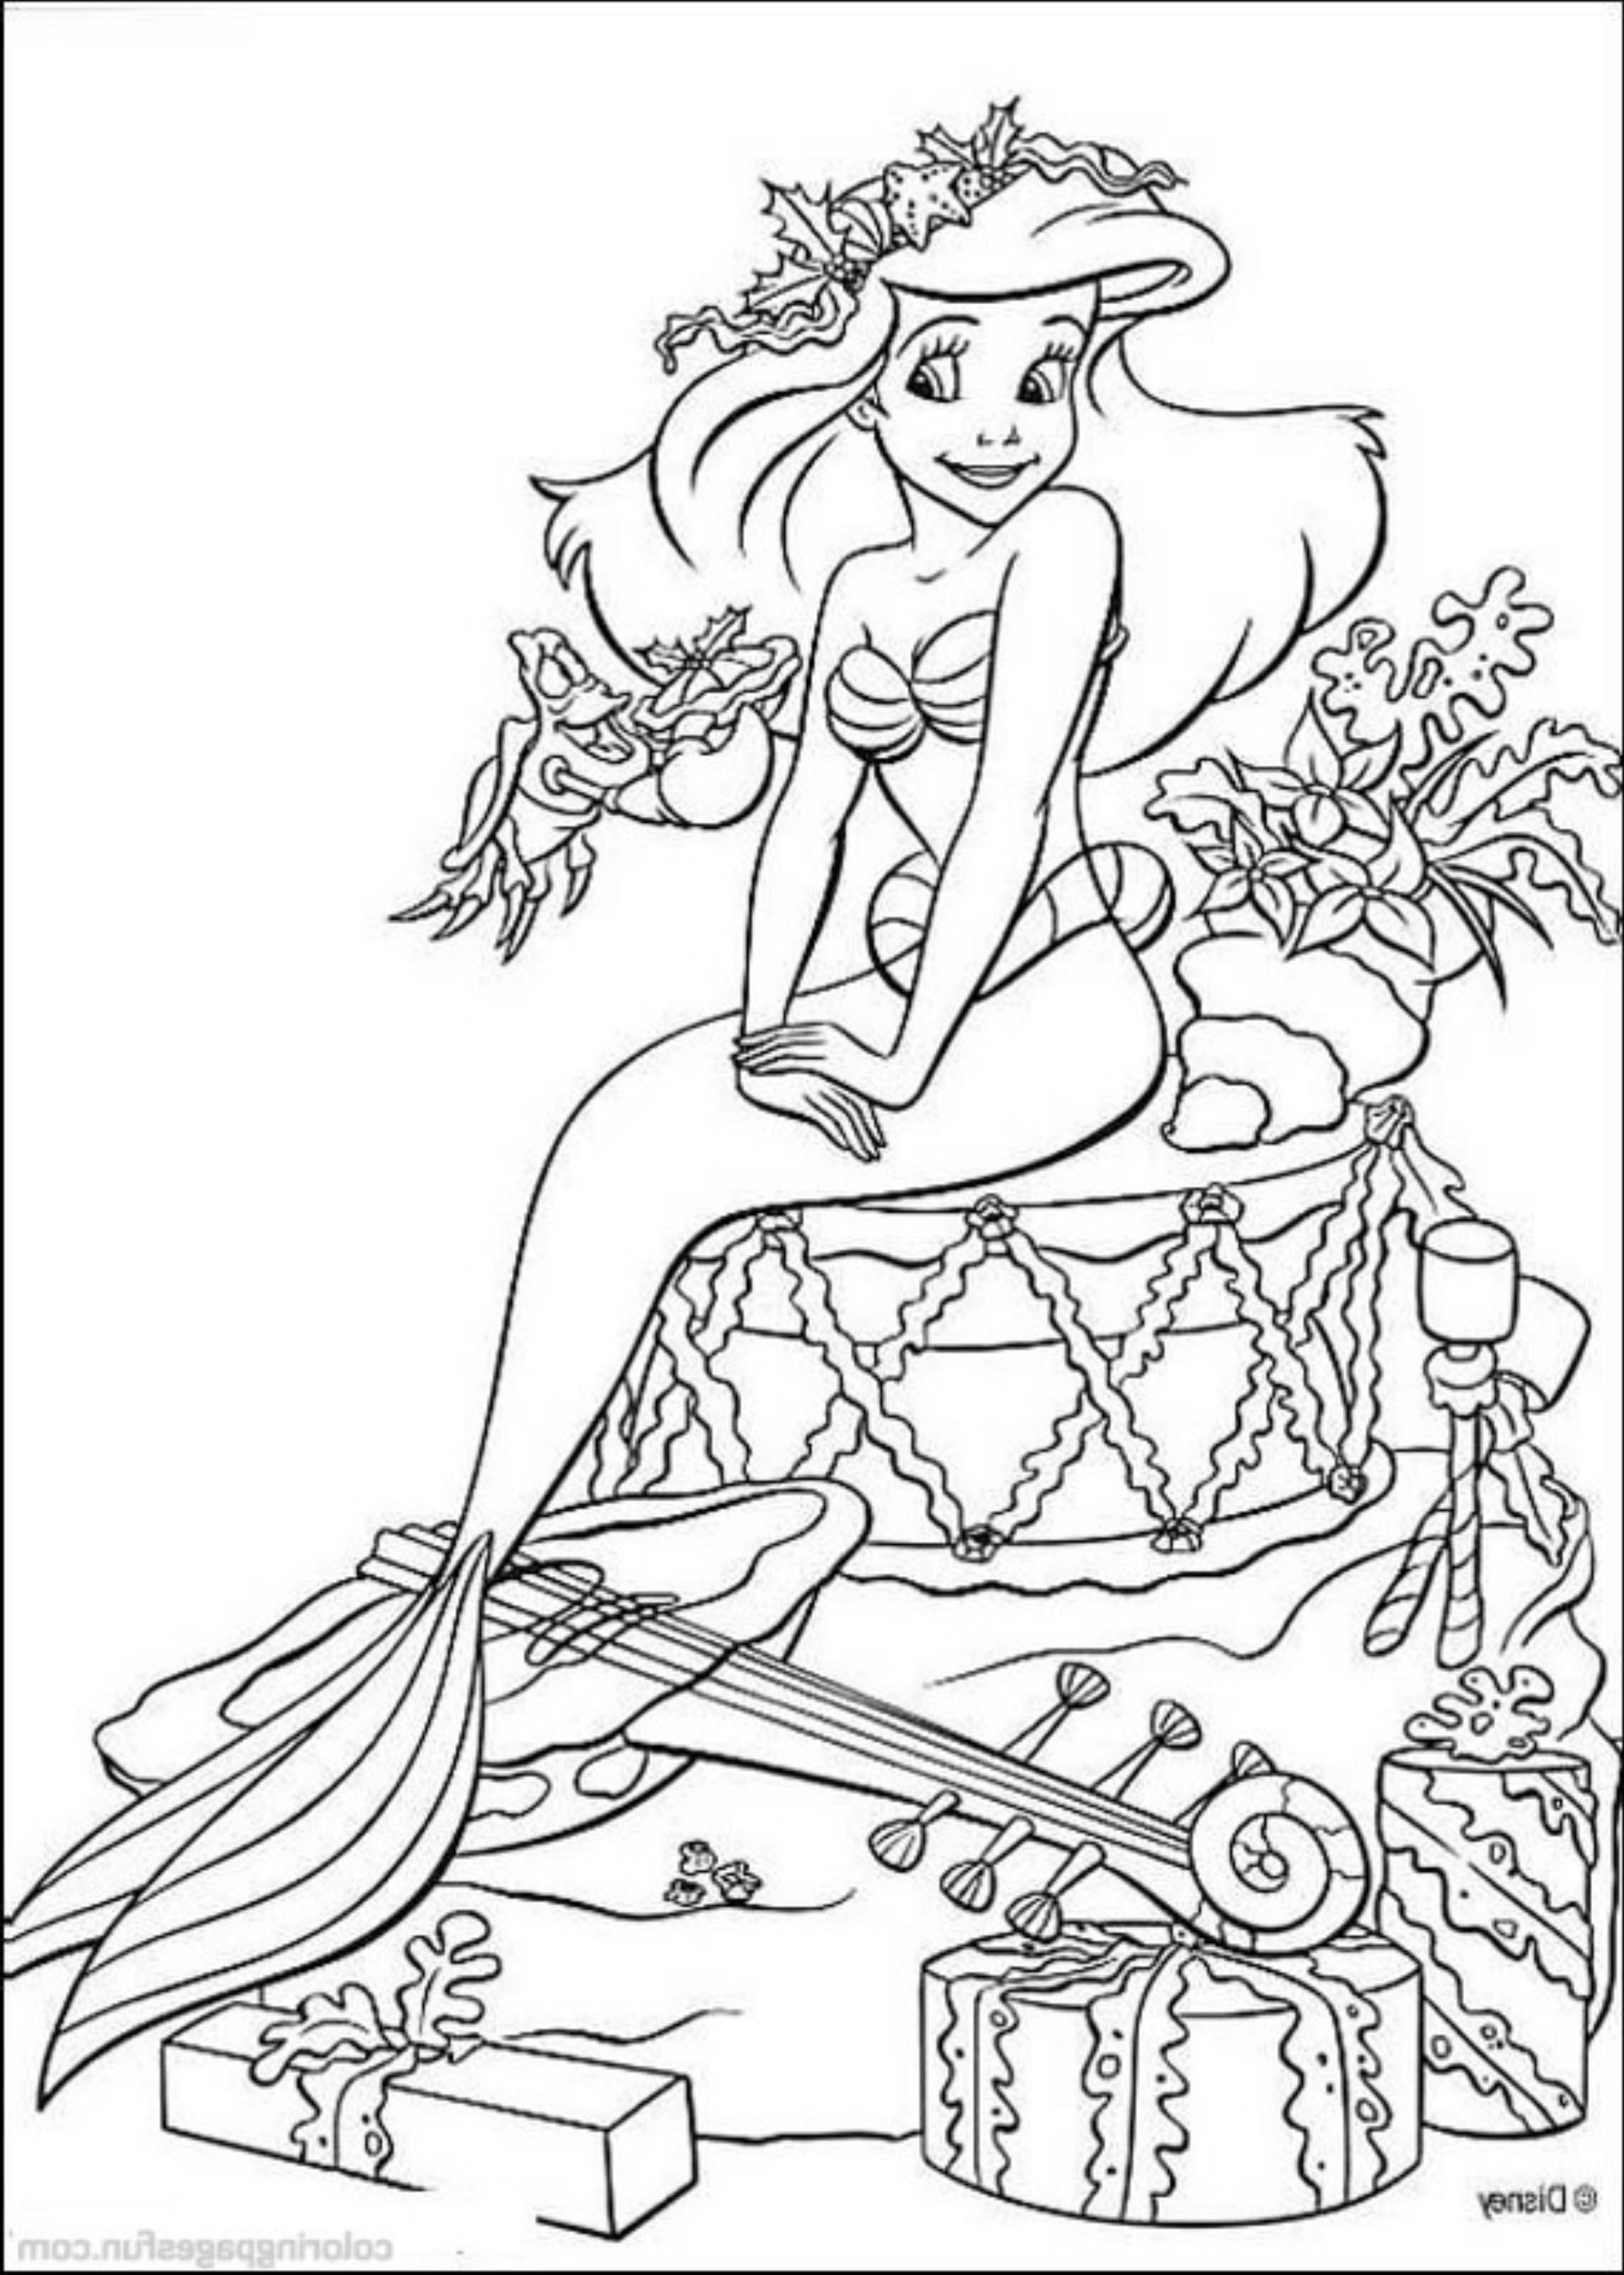 Coloring Pages Of The Little Mermaid And Friends Printable Kids